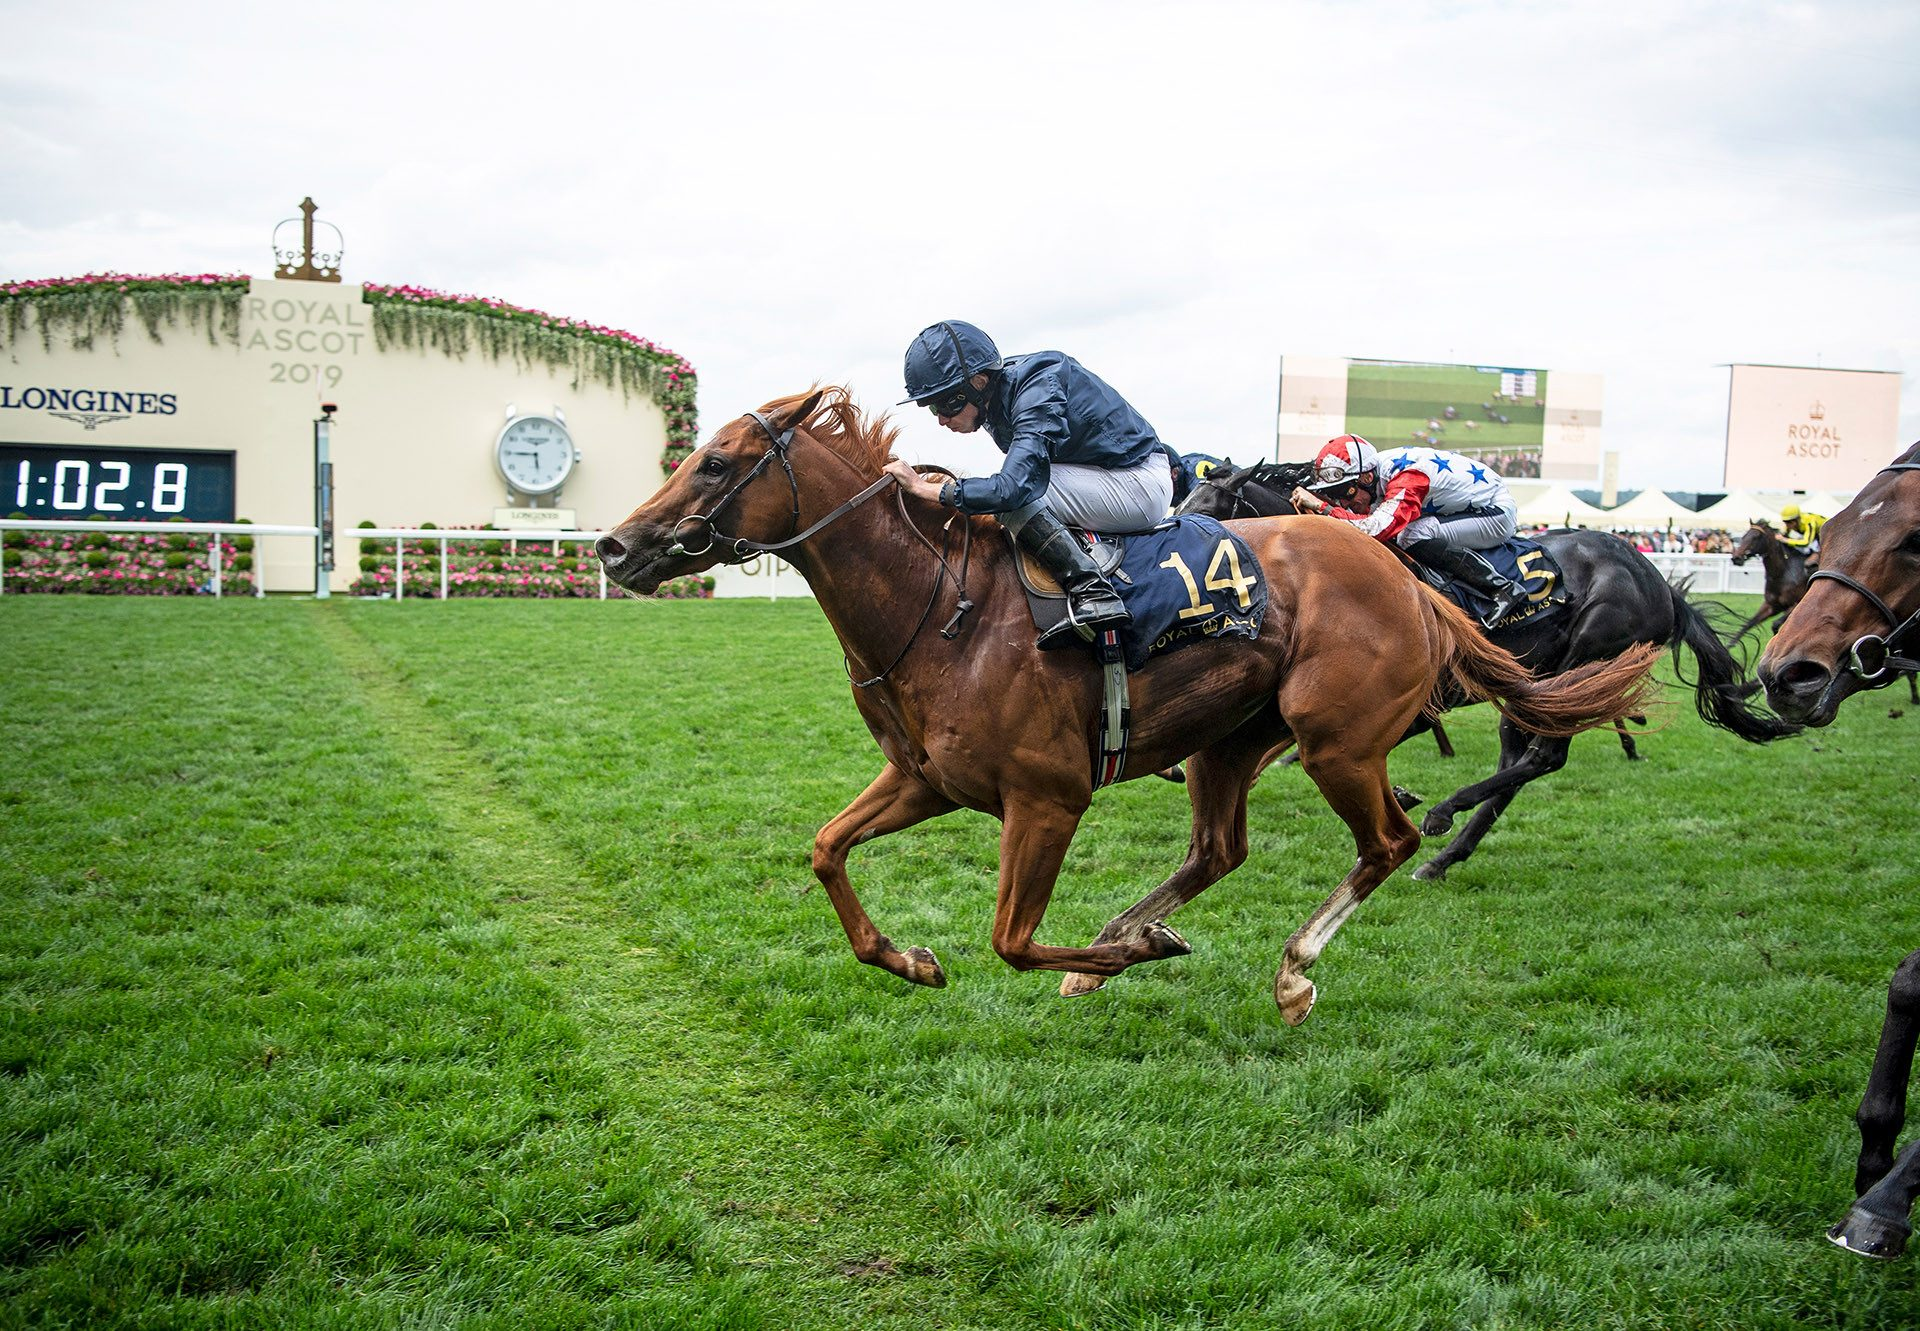 Southern Hills (Gleneagles) winning the Windsor Castle at Royal Ascot